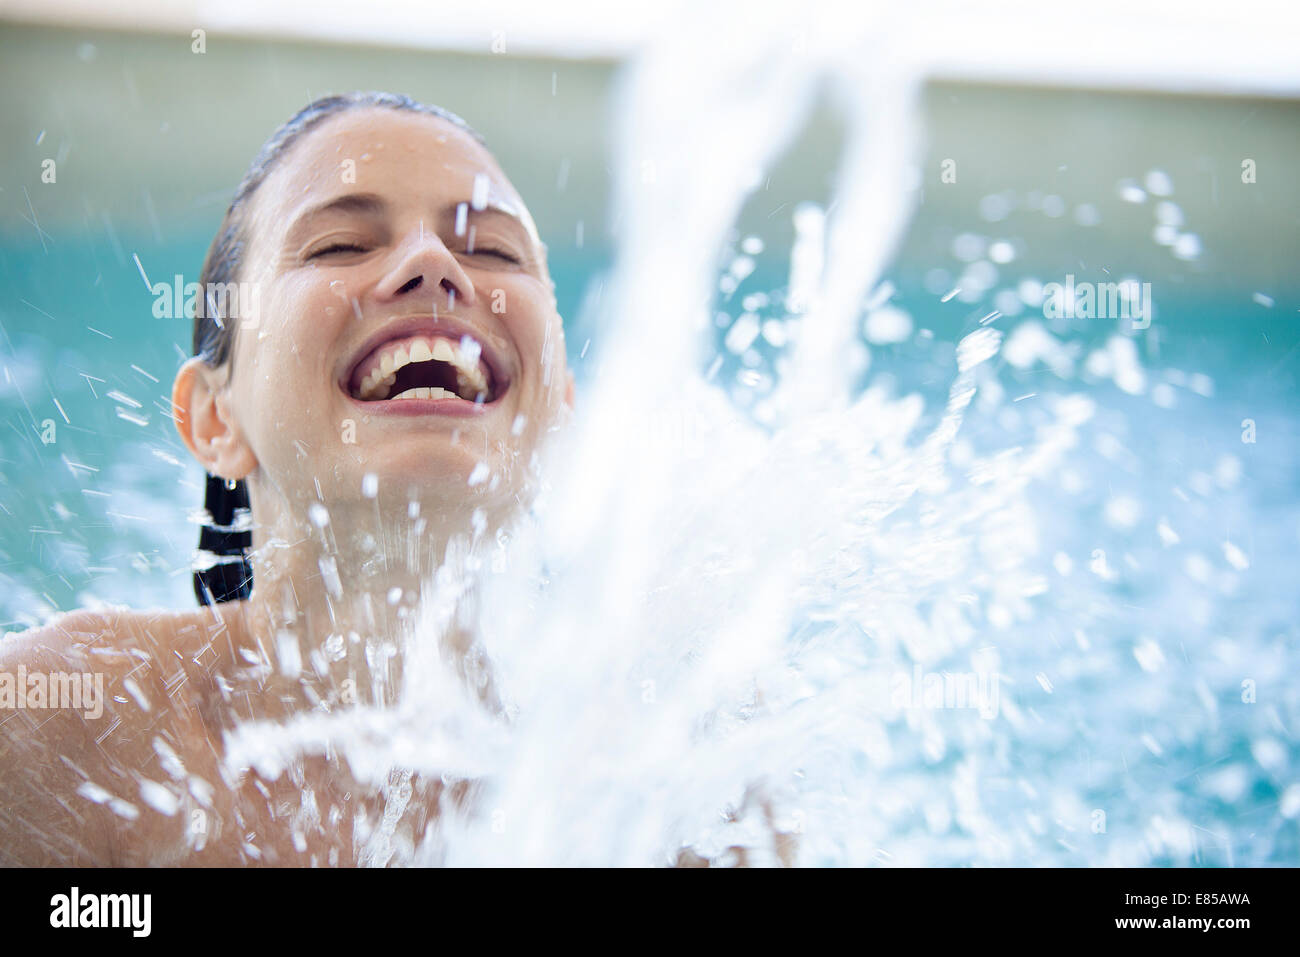 Woman splashing in pool with eyes closed - Stock Image